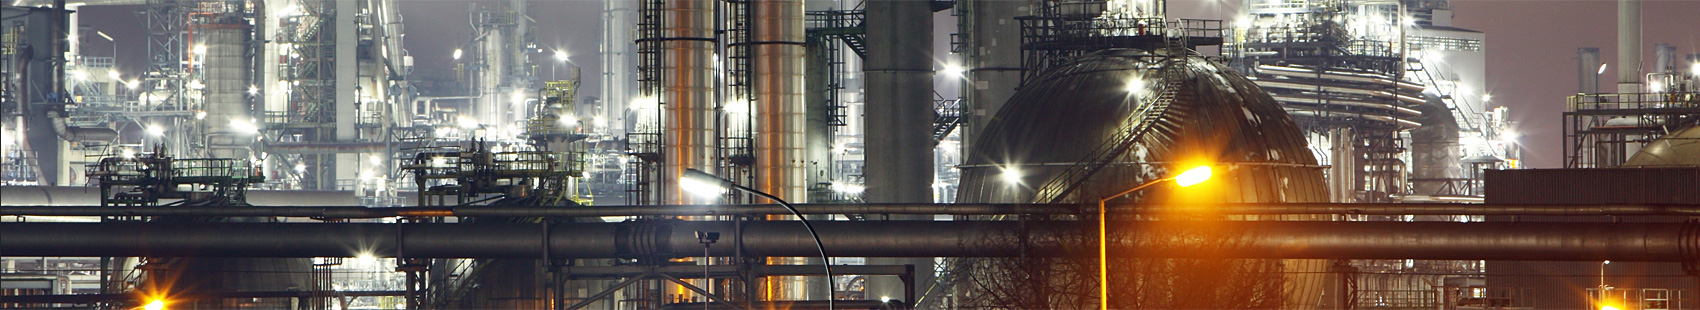 Petrochemical Companies Form 'Cracker of the Future' Consortium